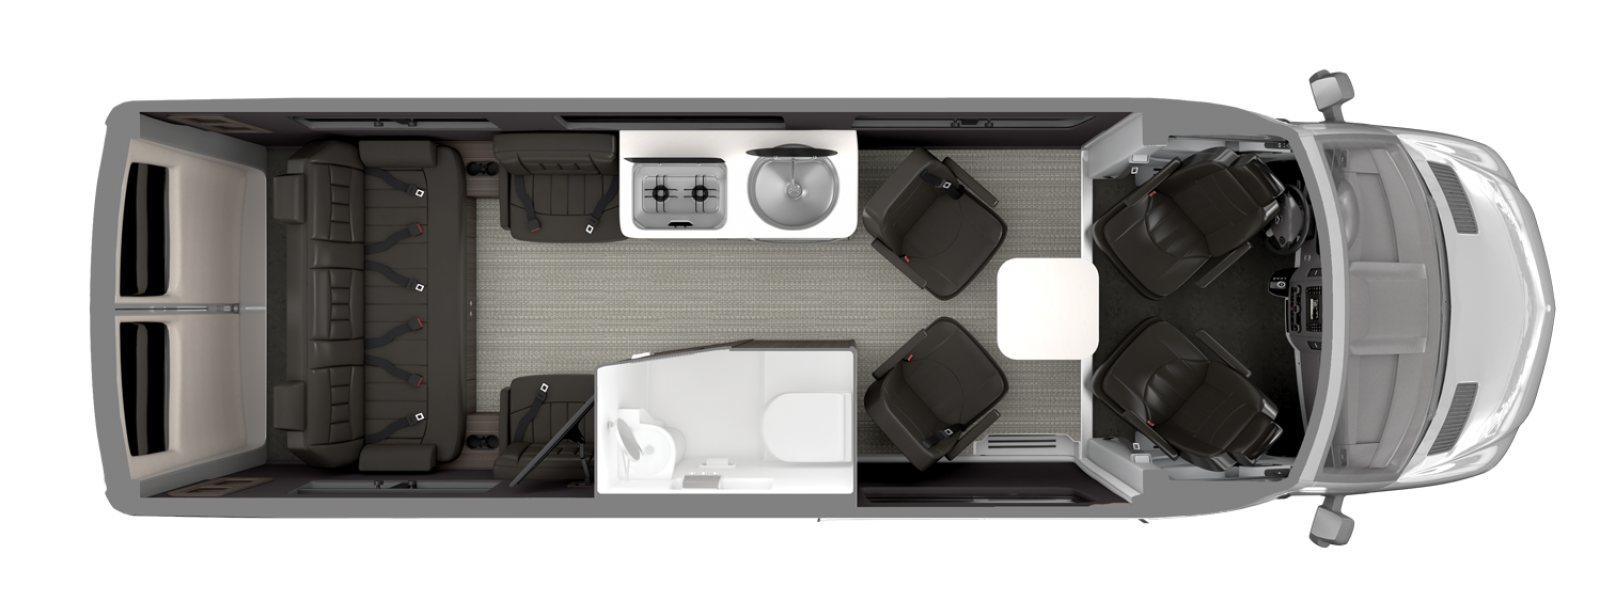 Airstream Interstate 24GL Floor Plan Formal Black